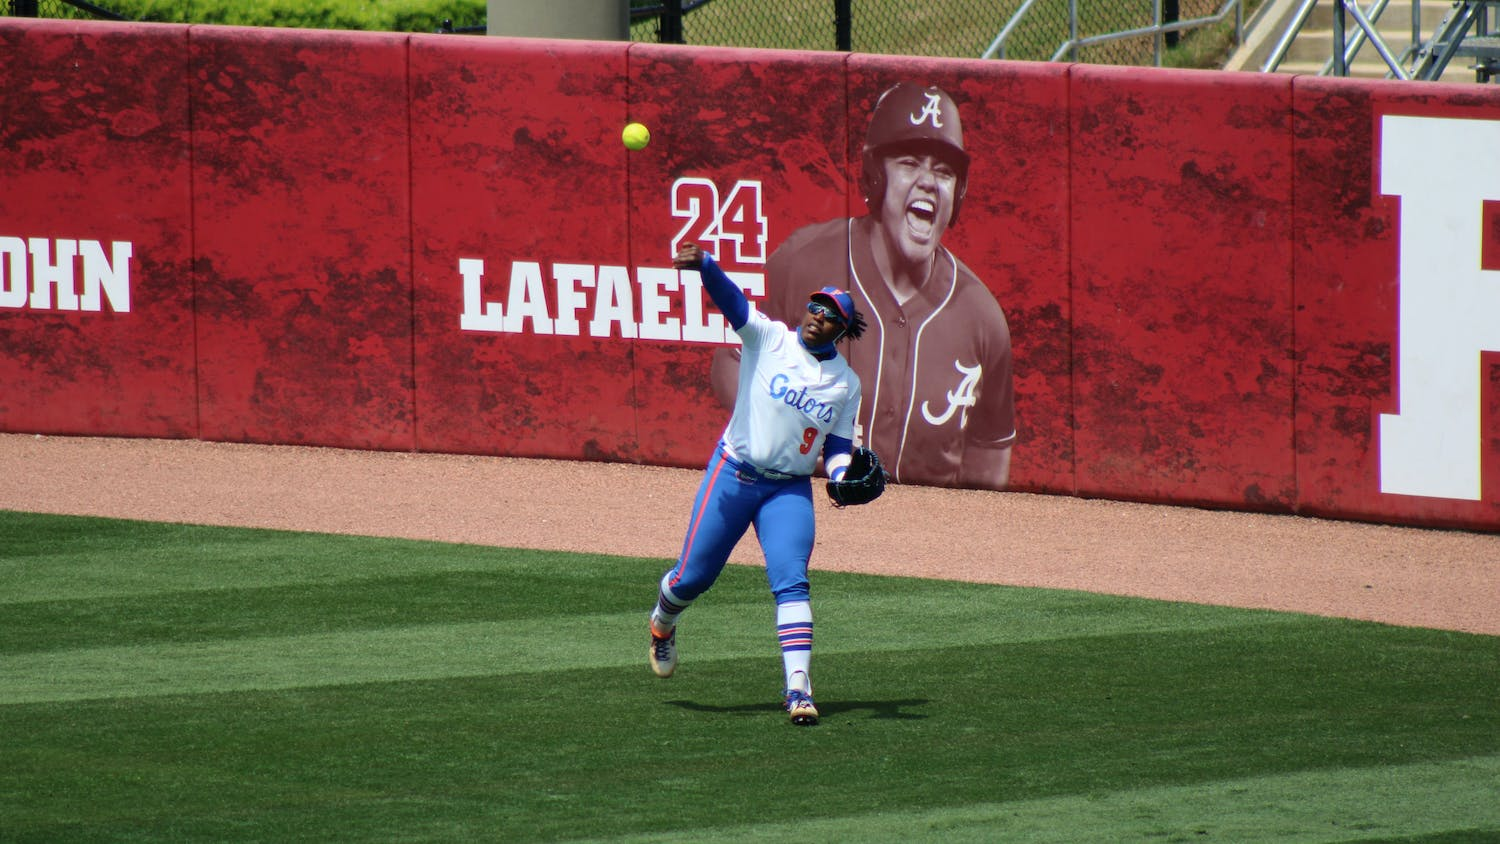 Outfield Jamie Hoover provided a clutch homer in Florida's 5-2 victory over Missouri Friday.